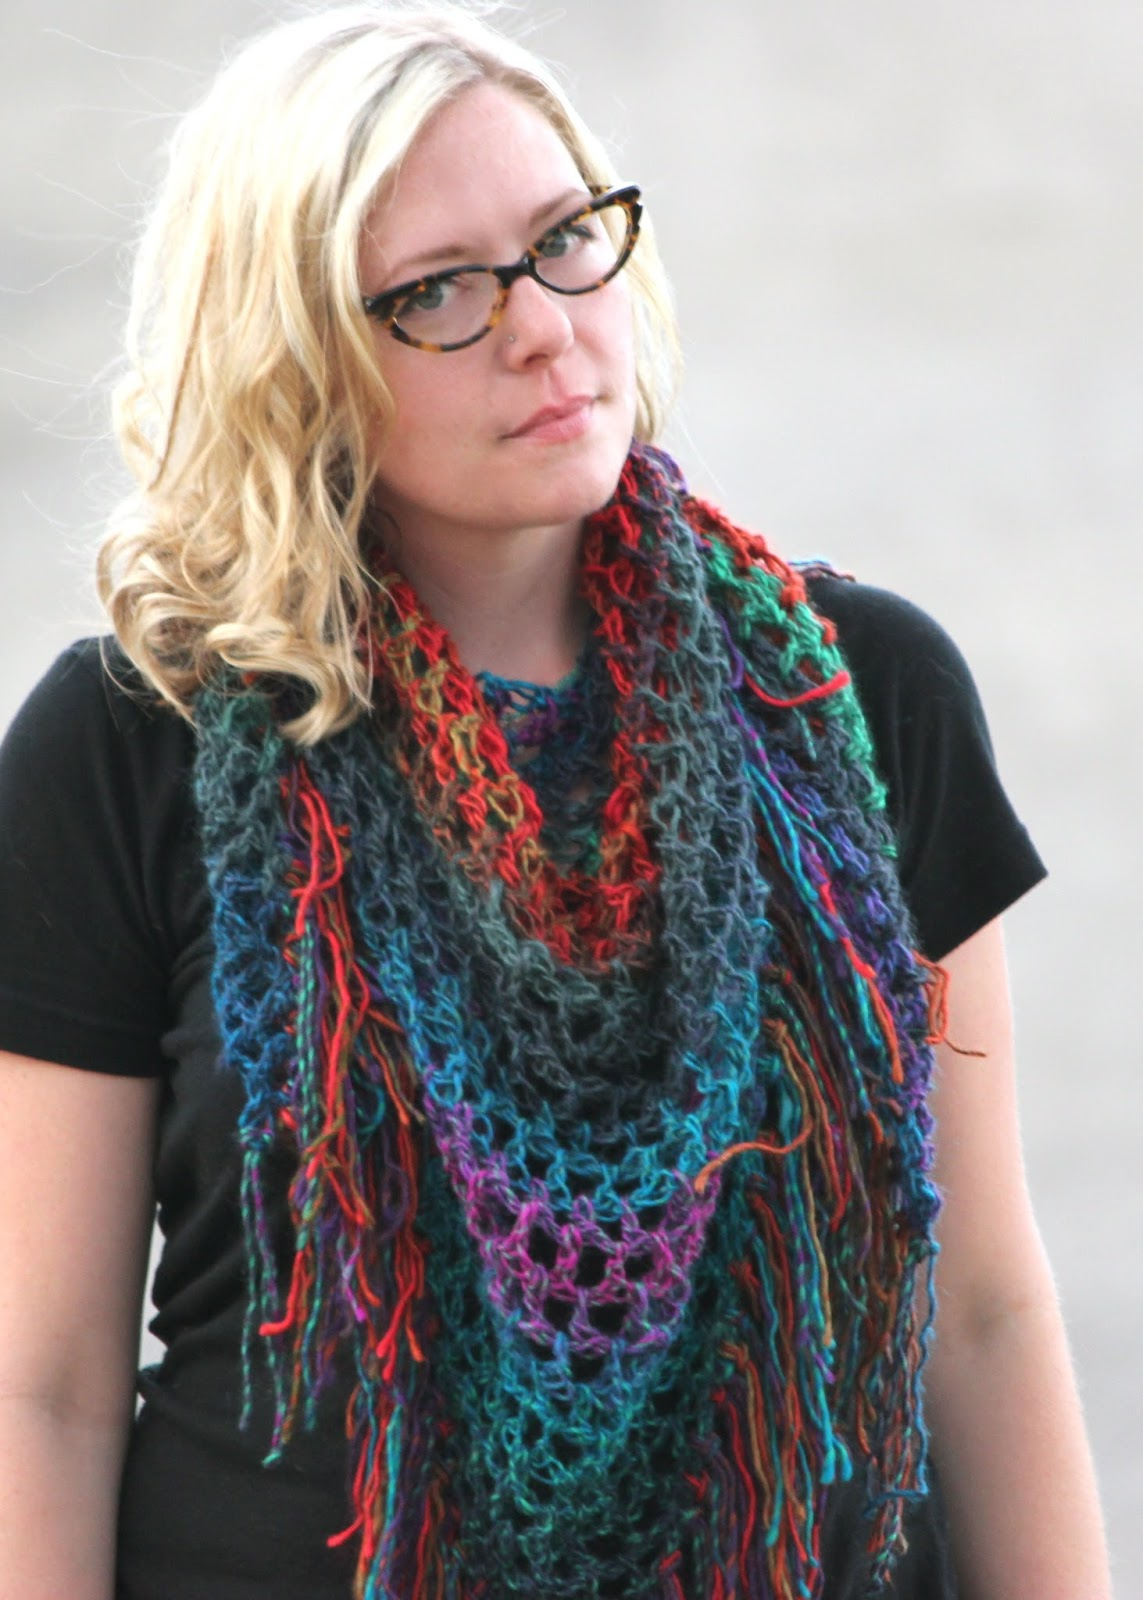 Free Crochet Patterns For Dressy Scarves : Cornflower Blue: Free Crochet Pattern